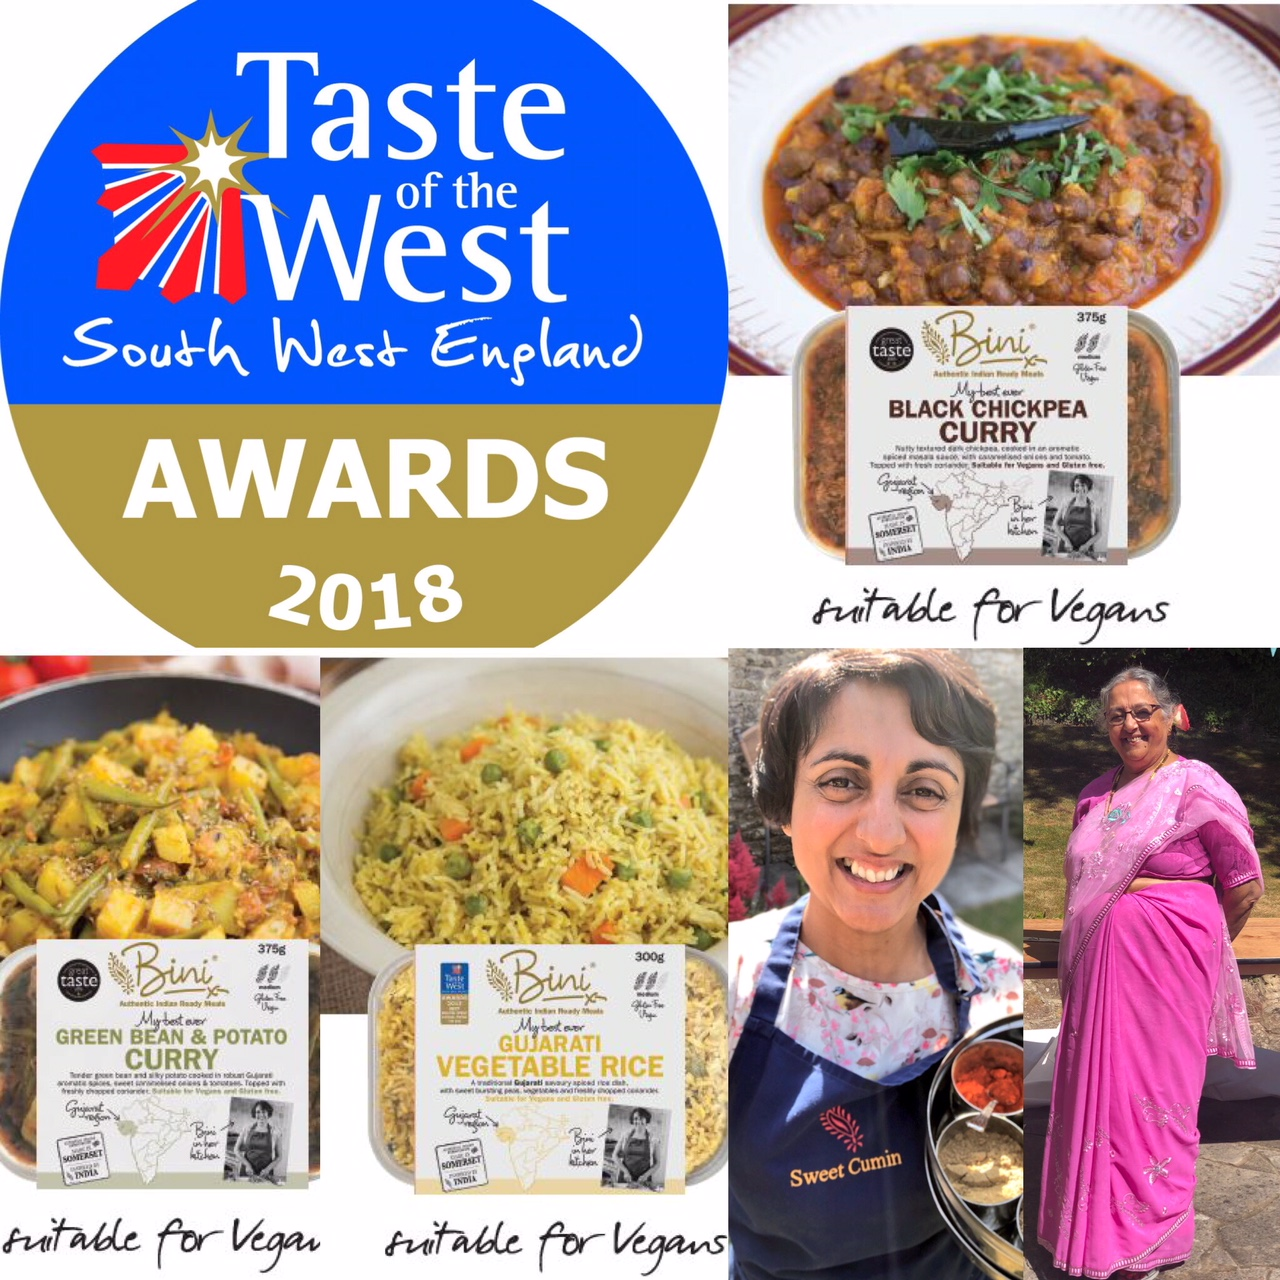 3 GOLD AWARDS for Bini Curries VEGAN readymeals in the Taste of the West Awards 2018